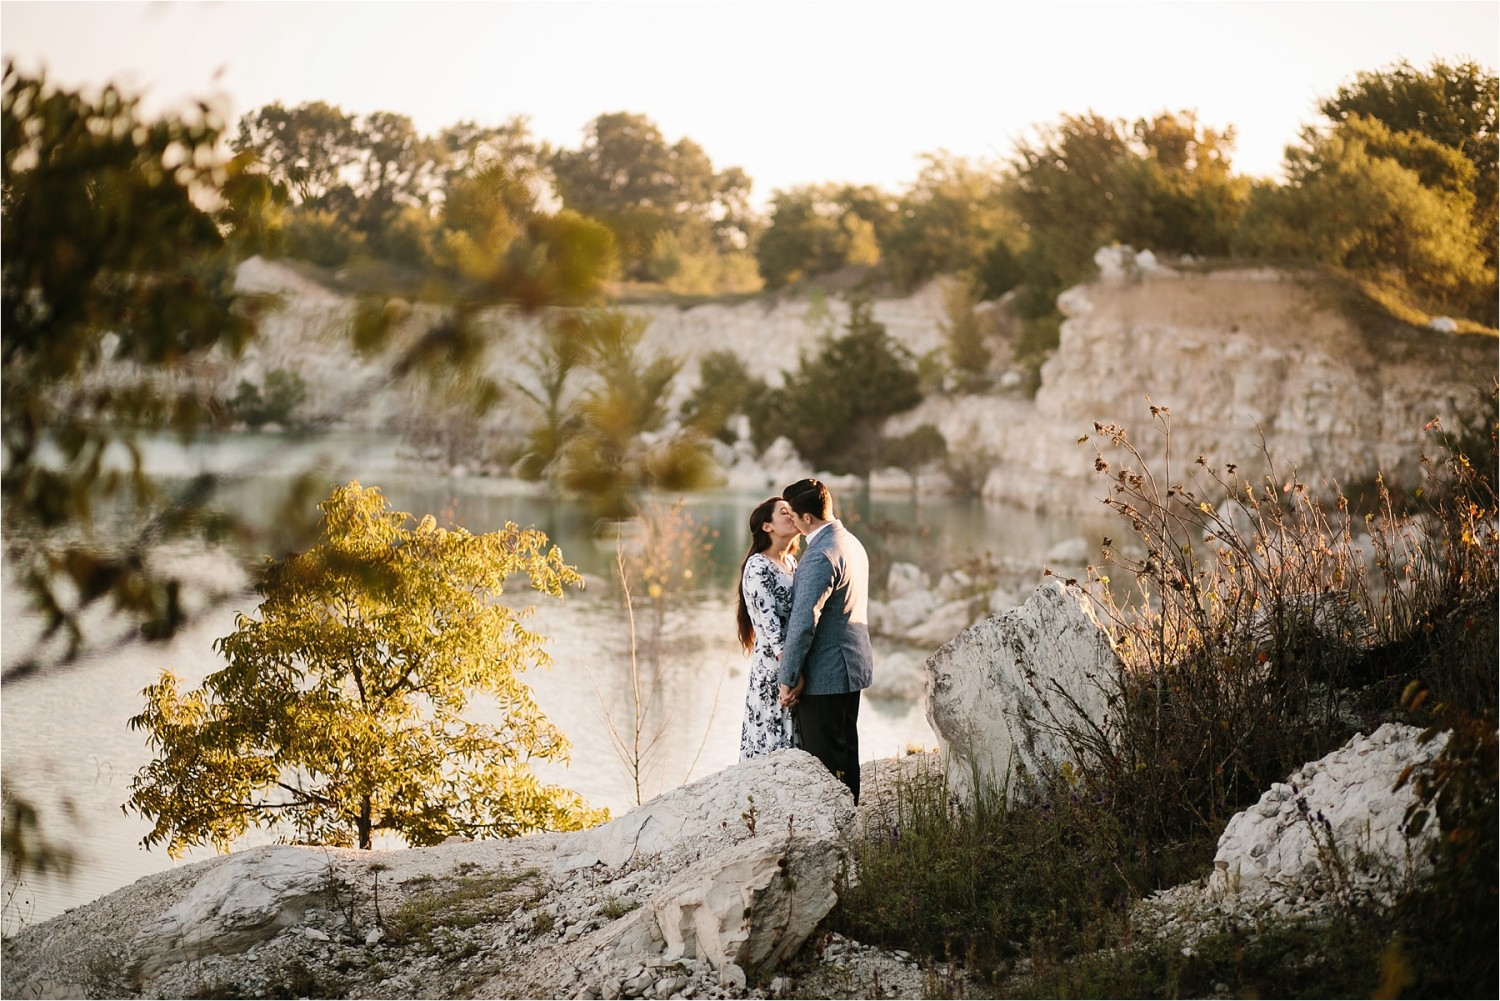 an-intimate-sunrise-session-by-north-texas-wedding-photographer-rachel-meagan-photography-_-24